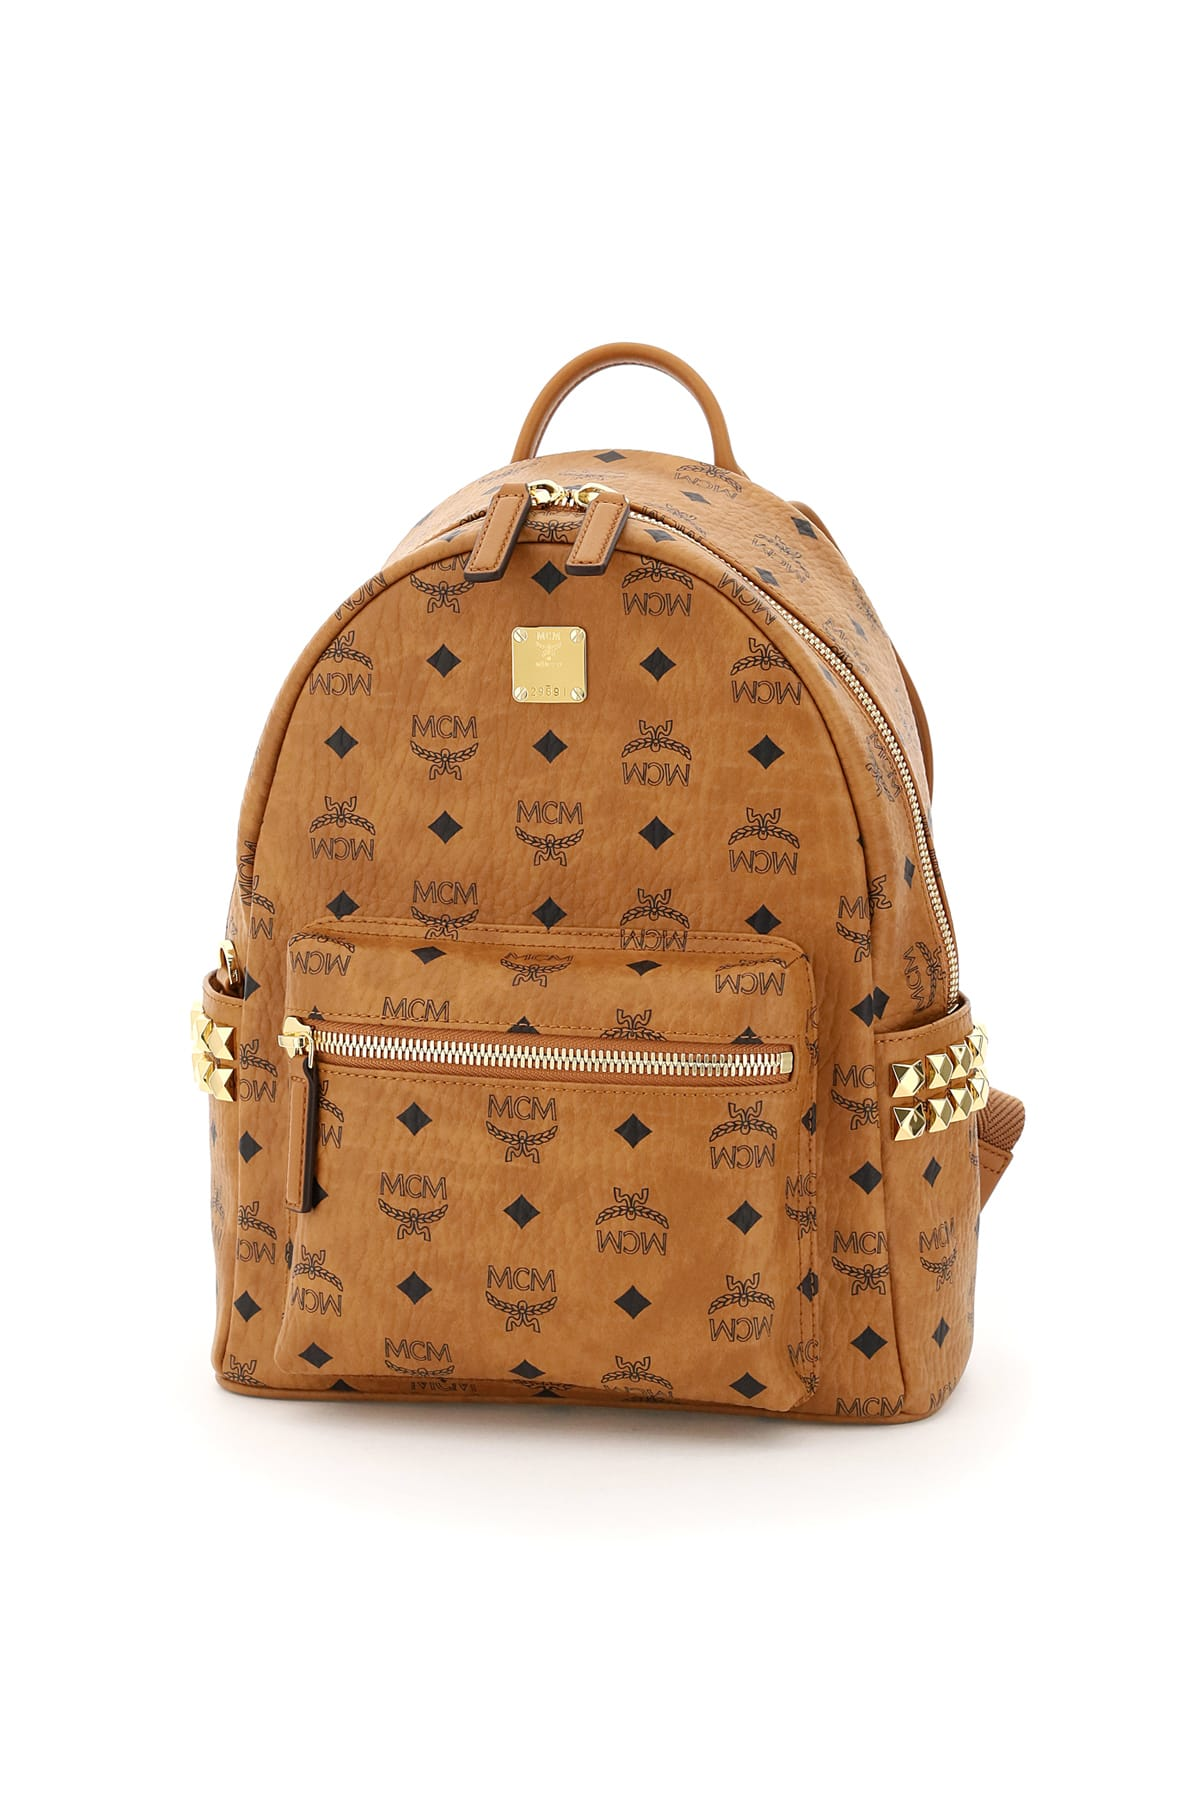 Mcm STARK VISETOS BACKPACK WITH SIDE STUDS